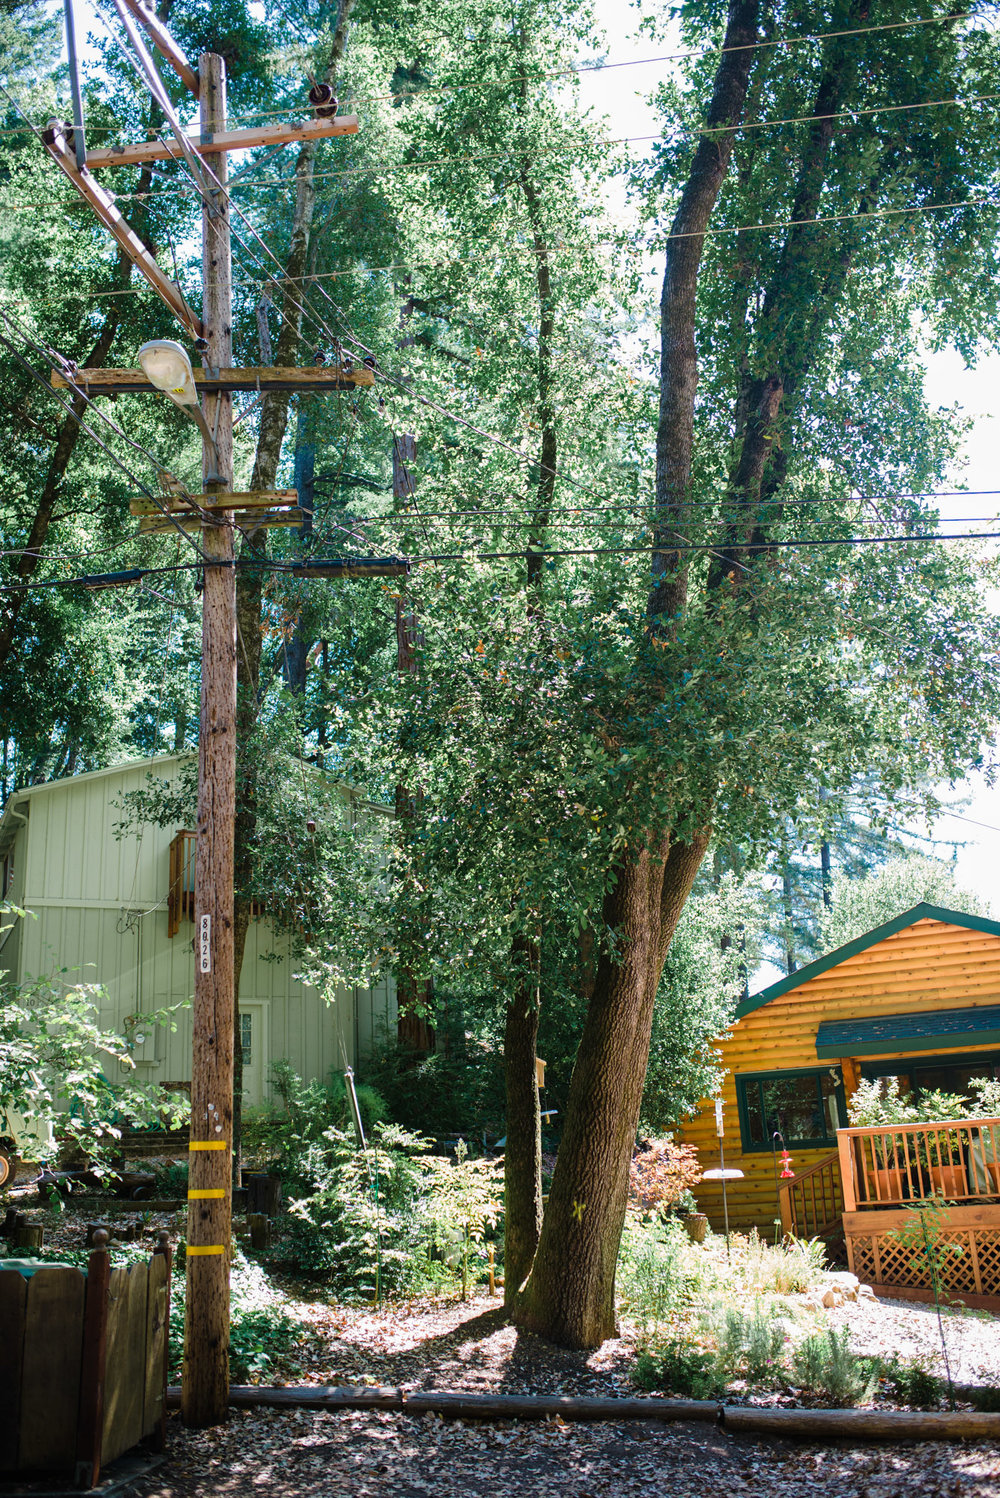 Yellow spray-painted Xs adorn trees selected for removal